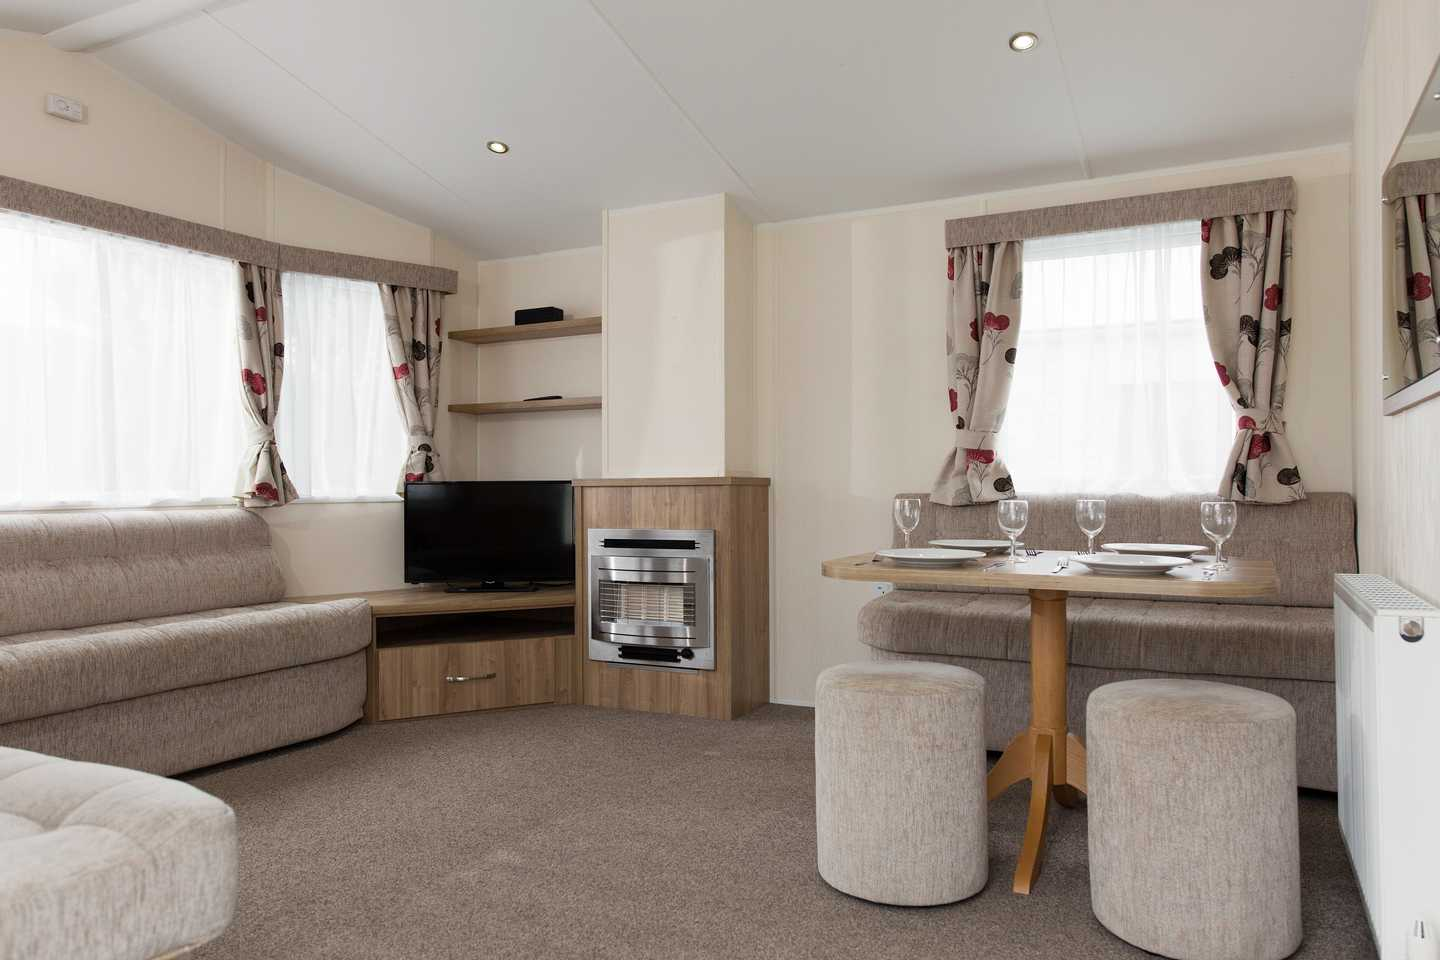 An Adapted caravan with dining area, TV, fireplace and sofa